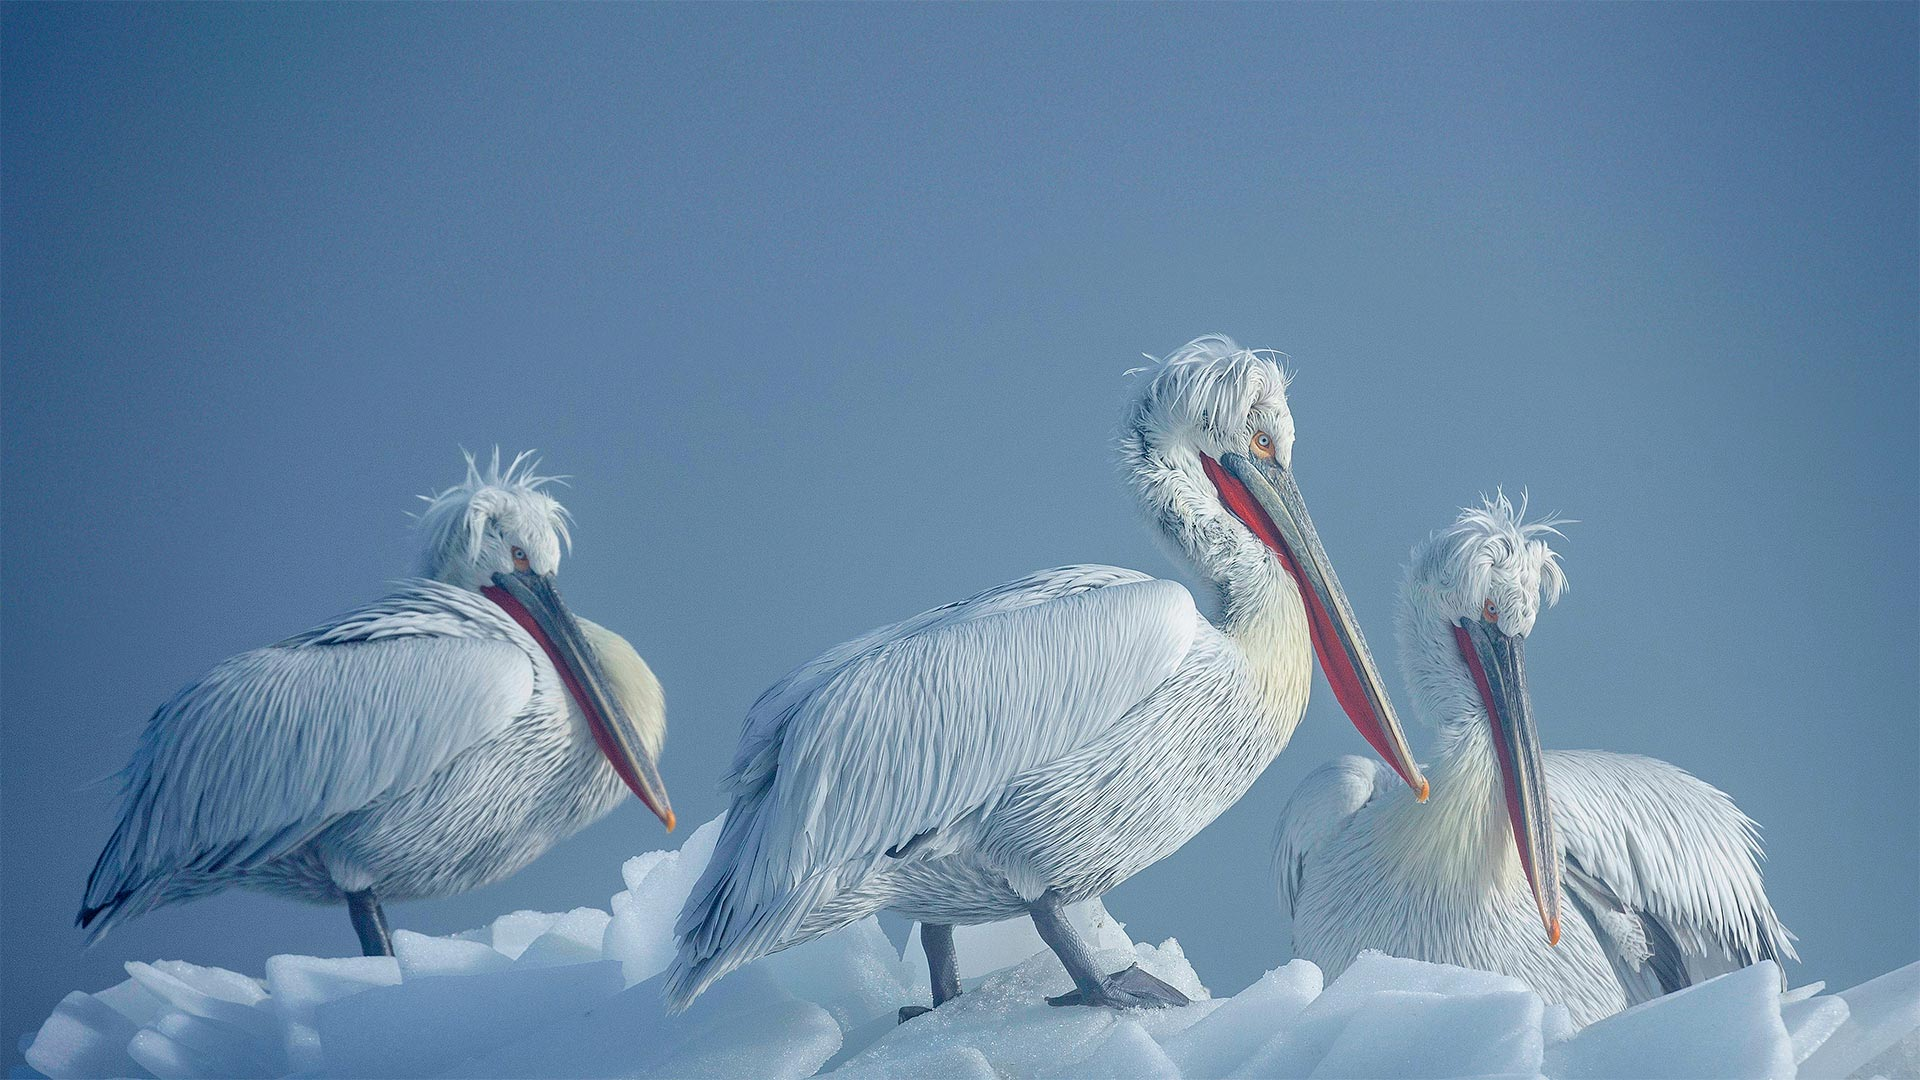 Dalmatian pelicans on ice, Lake Kerkini, Greece (© Guy Edwardes/Minden Pictures)(Bing United States)